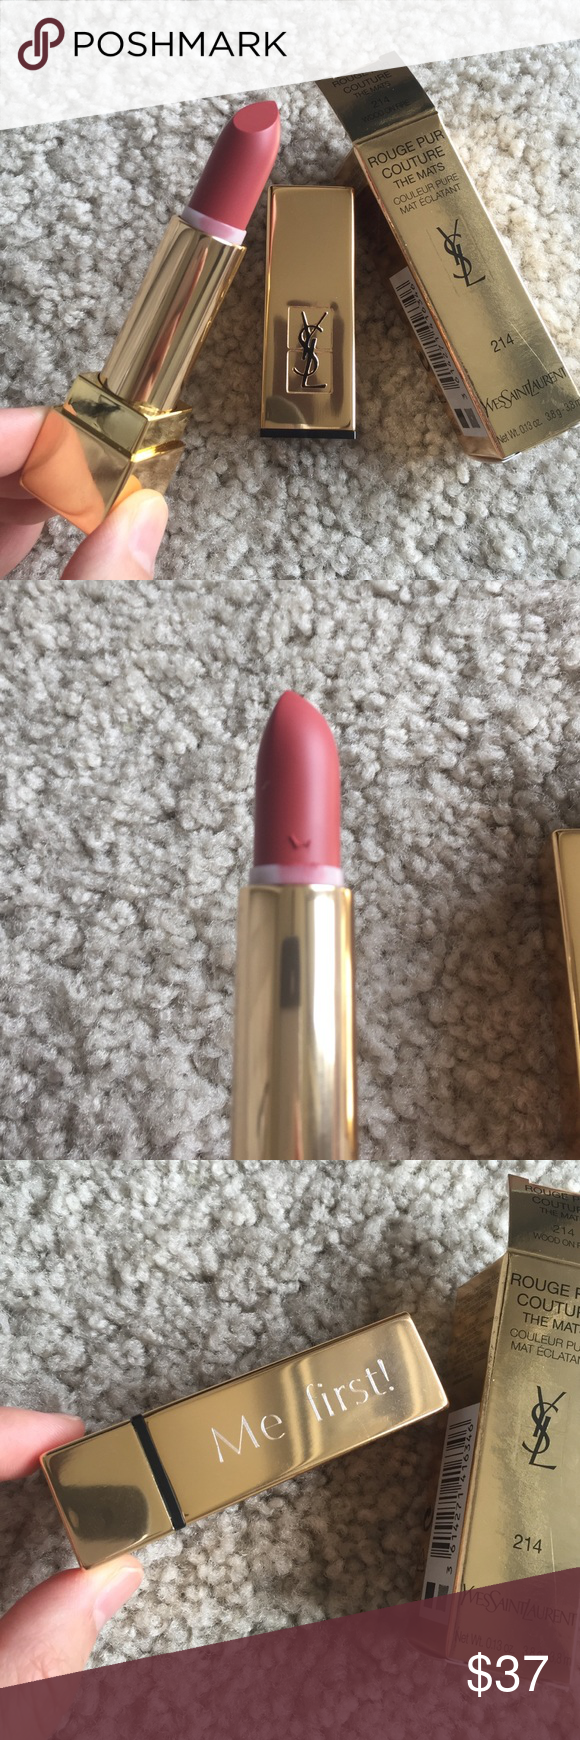 Ysl Rouge Pur Couture The Mats In 214 Wood On Fire Full Size New In Box Engraved Me First Authentic From Beauty Website Yves Saint Laurent Makeup Ysl Beauty